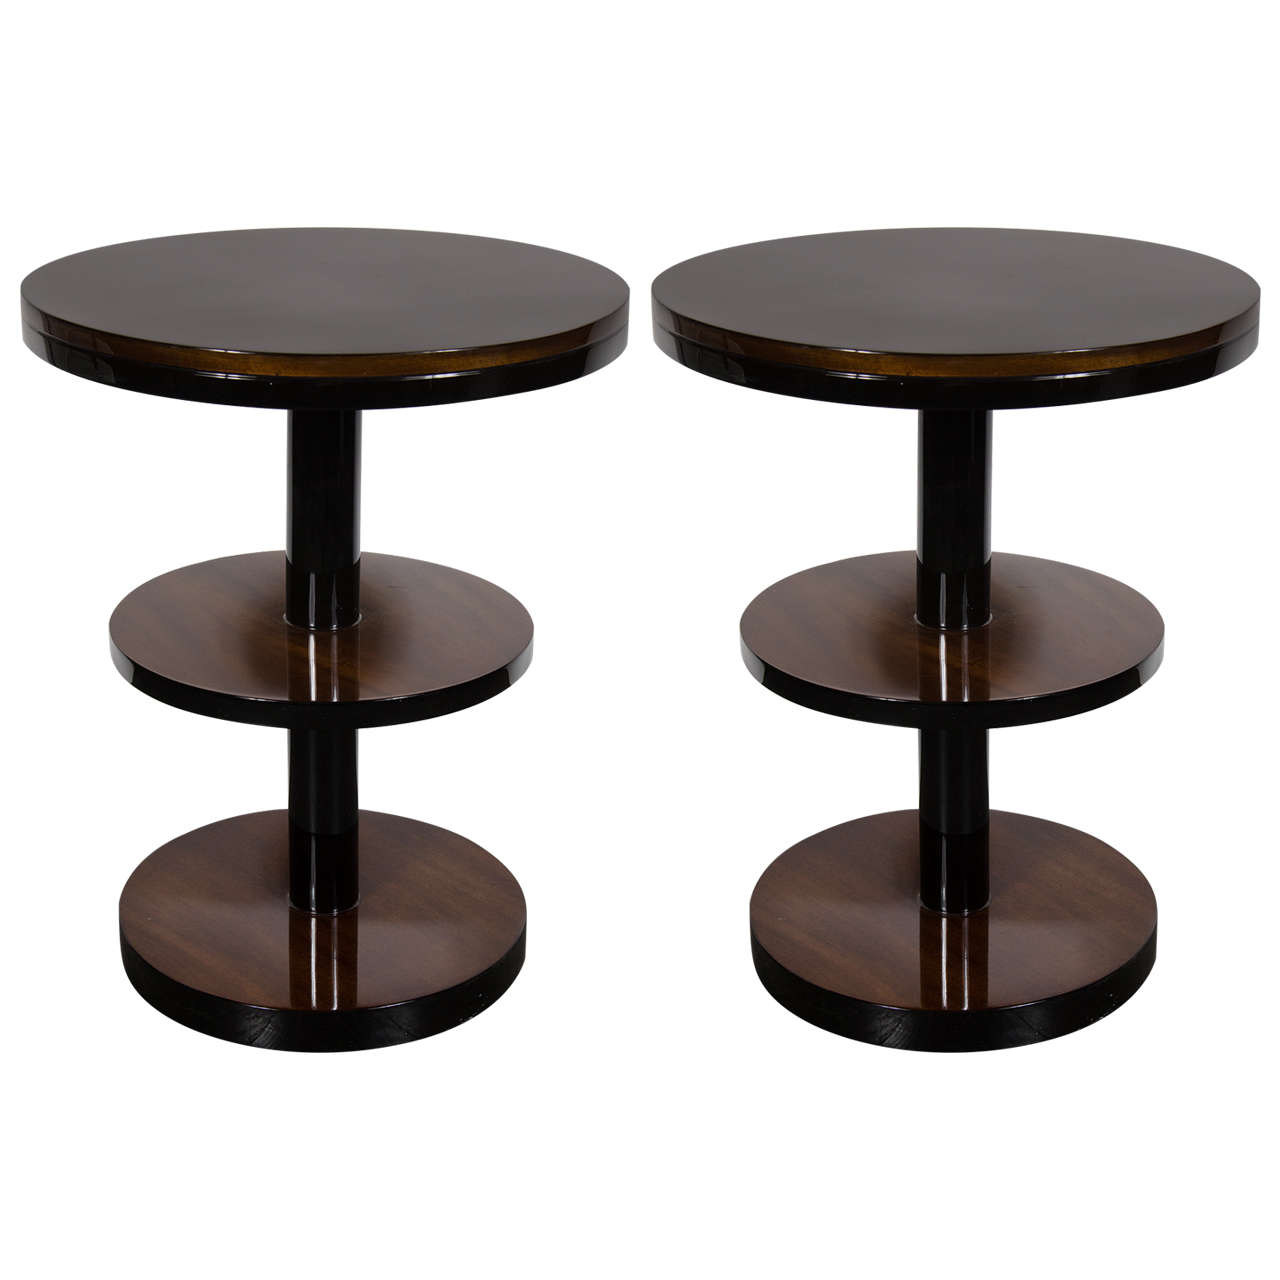 Art Deco Machine Age Three-Tier End Tables in Book- Matched Walnut & Lacquer